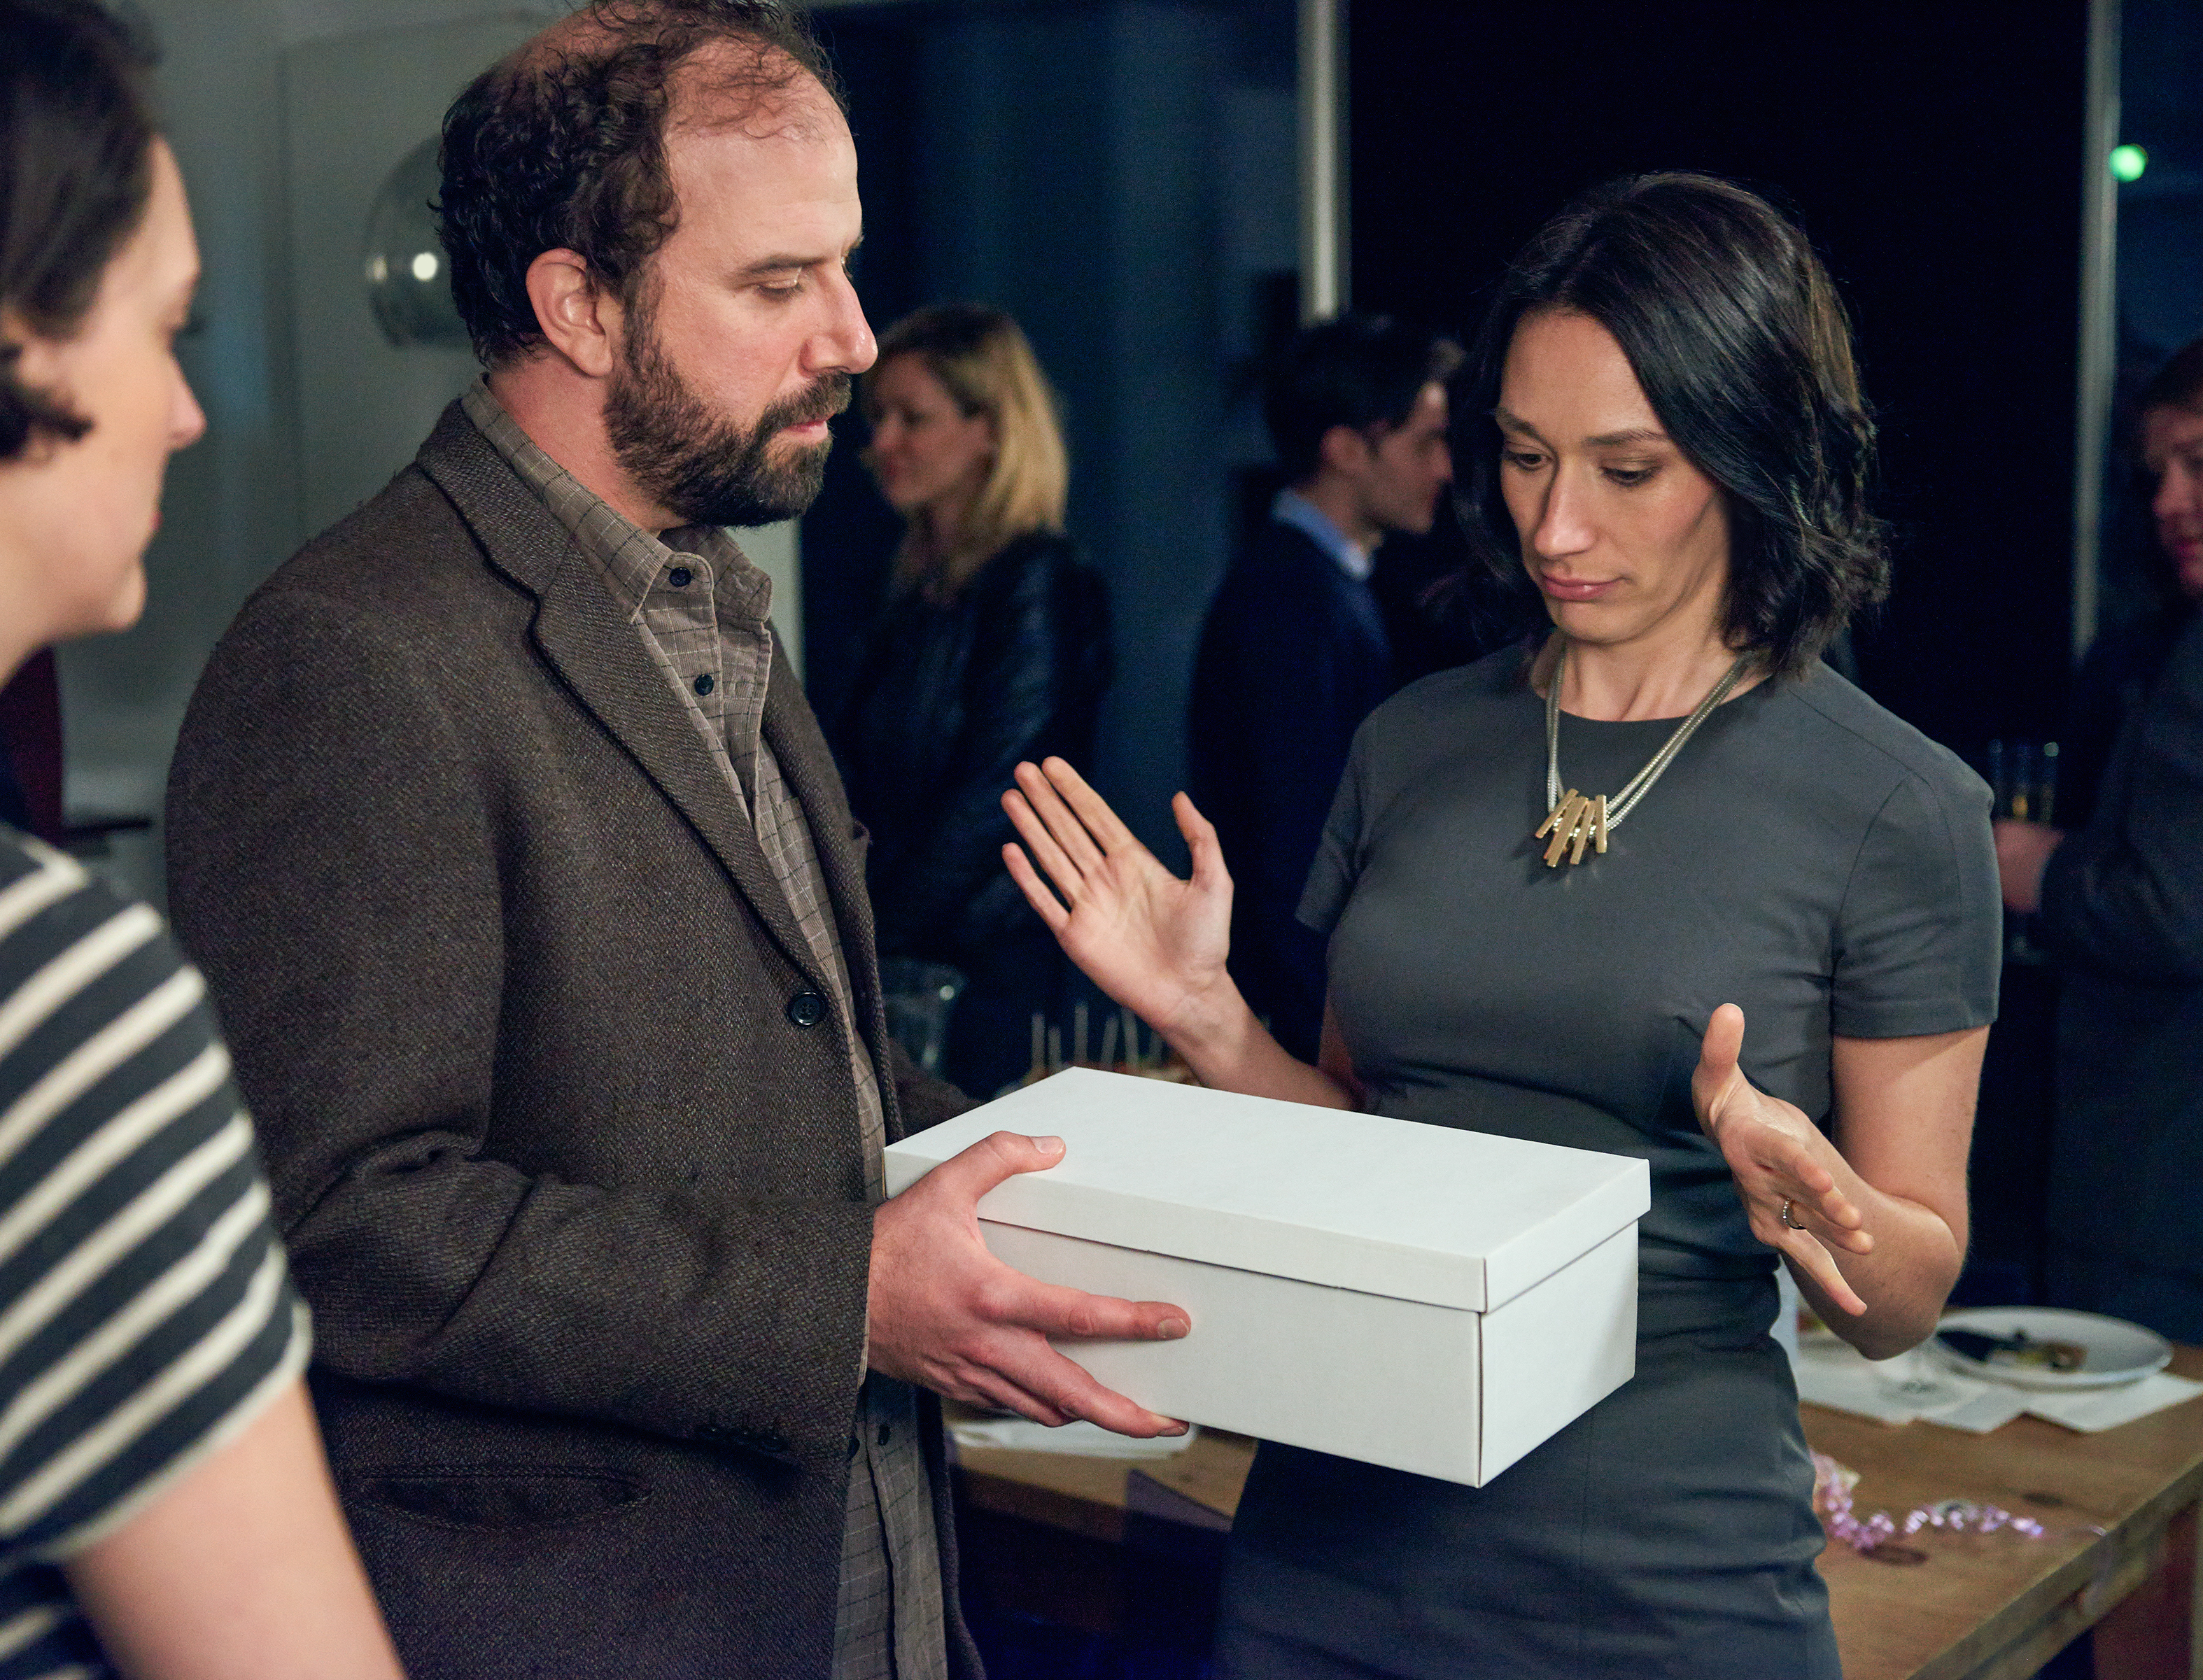 Brett Gelman, Phoebe Waller-Bridge, and Sian Clifford in Fleabag (2016)